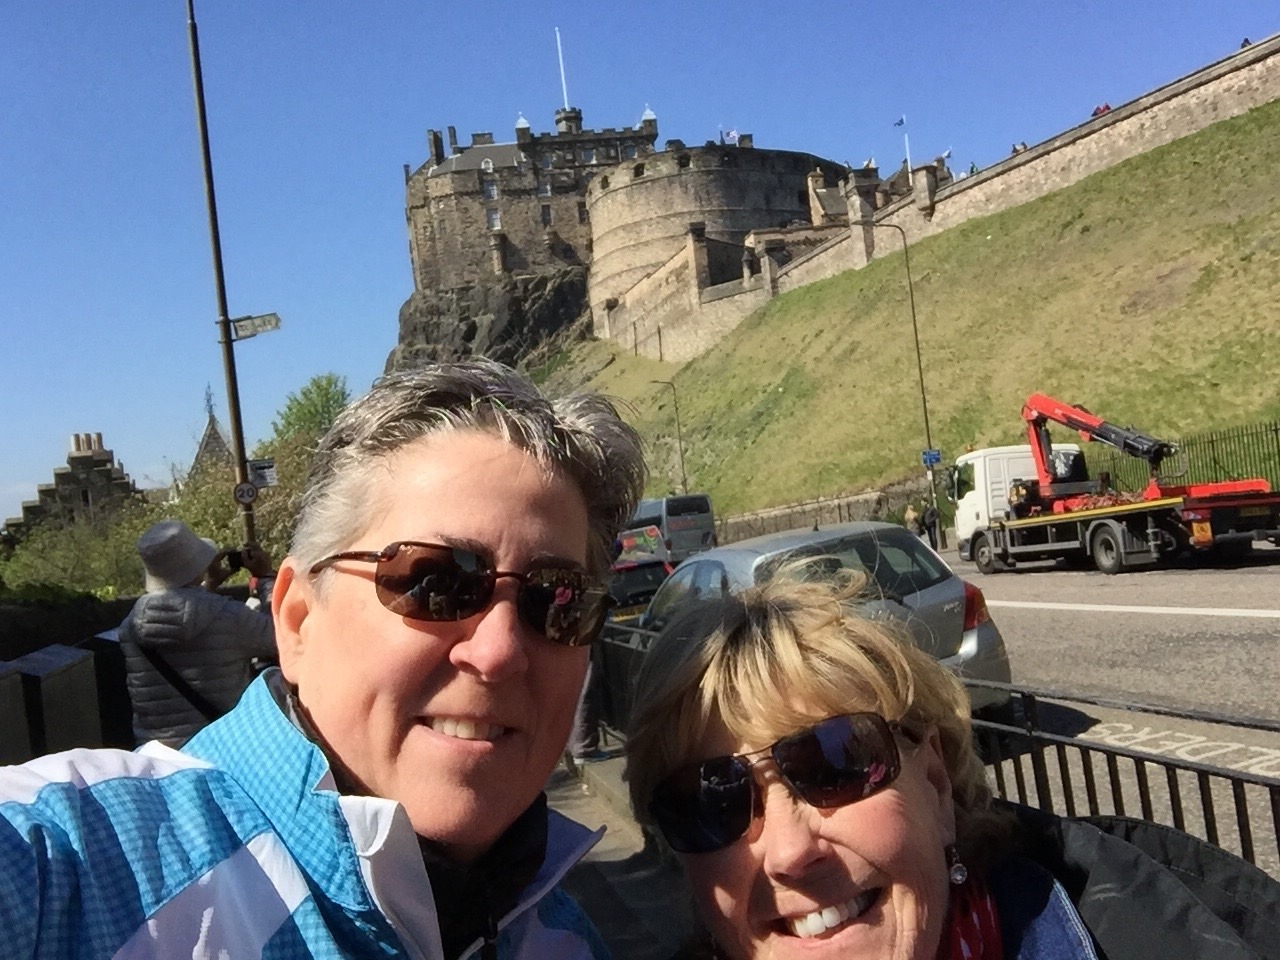 Edinburgh Castle in the background